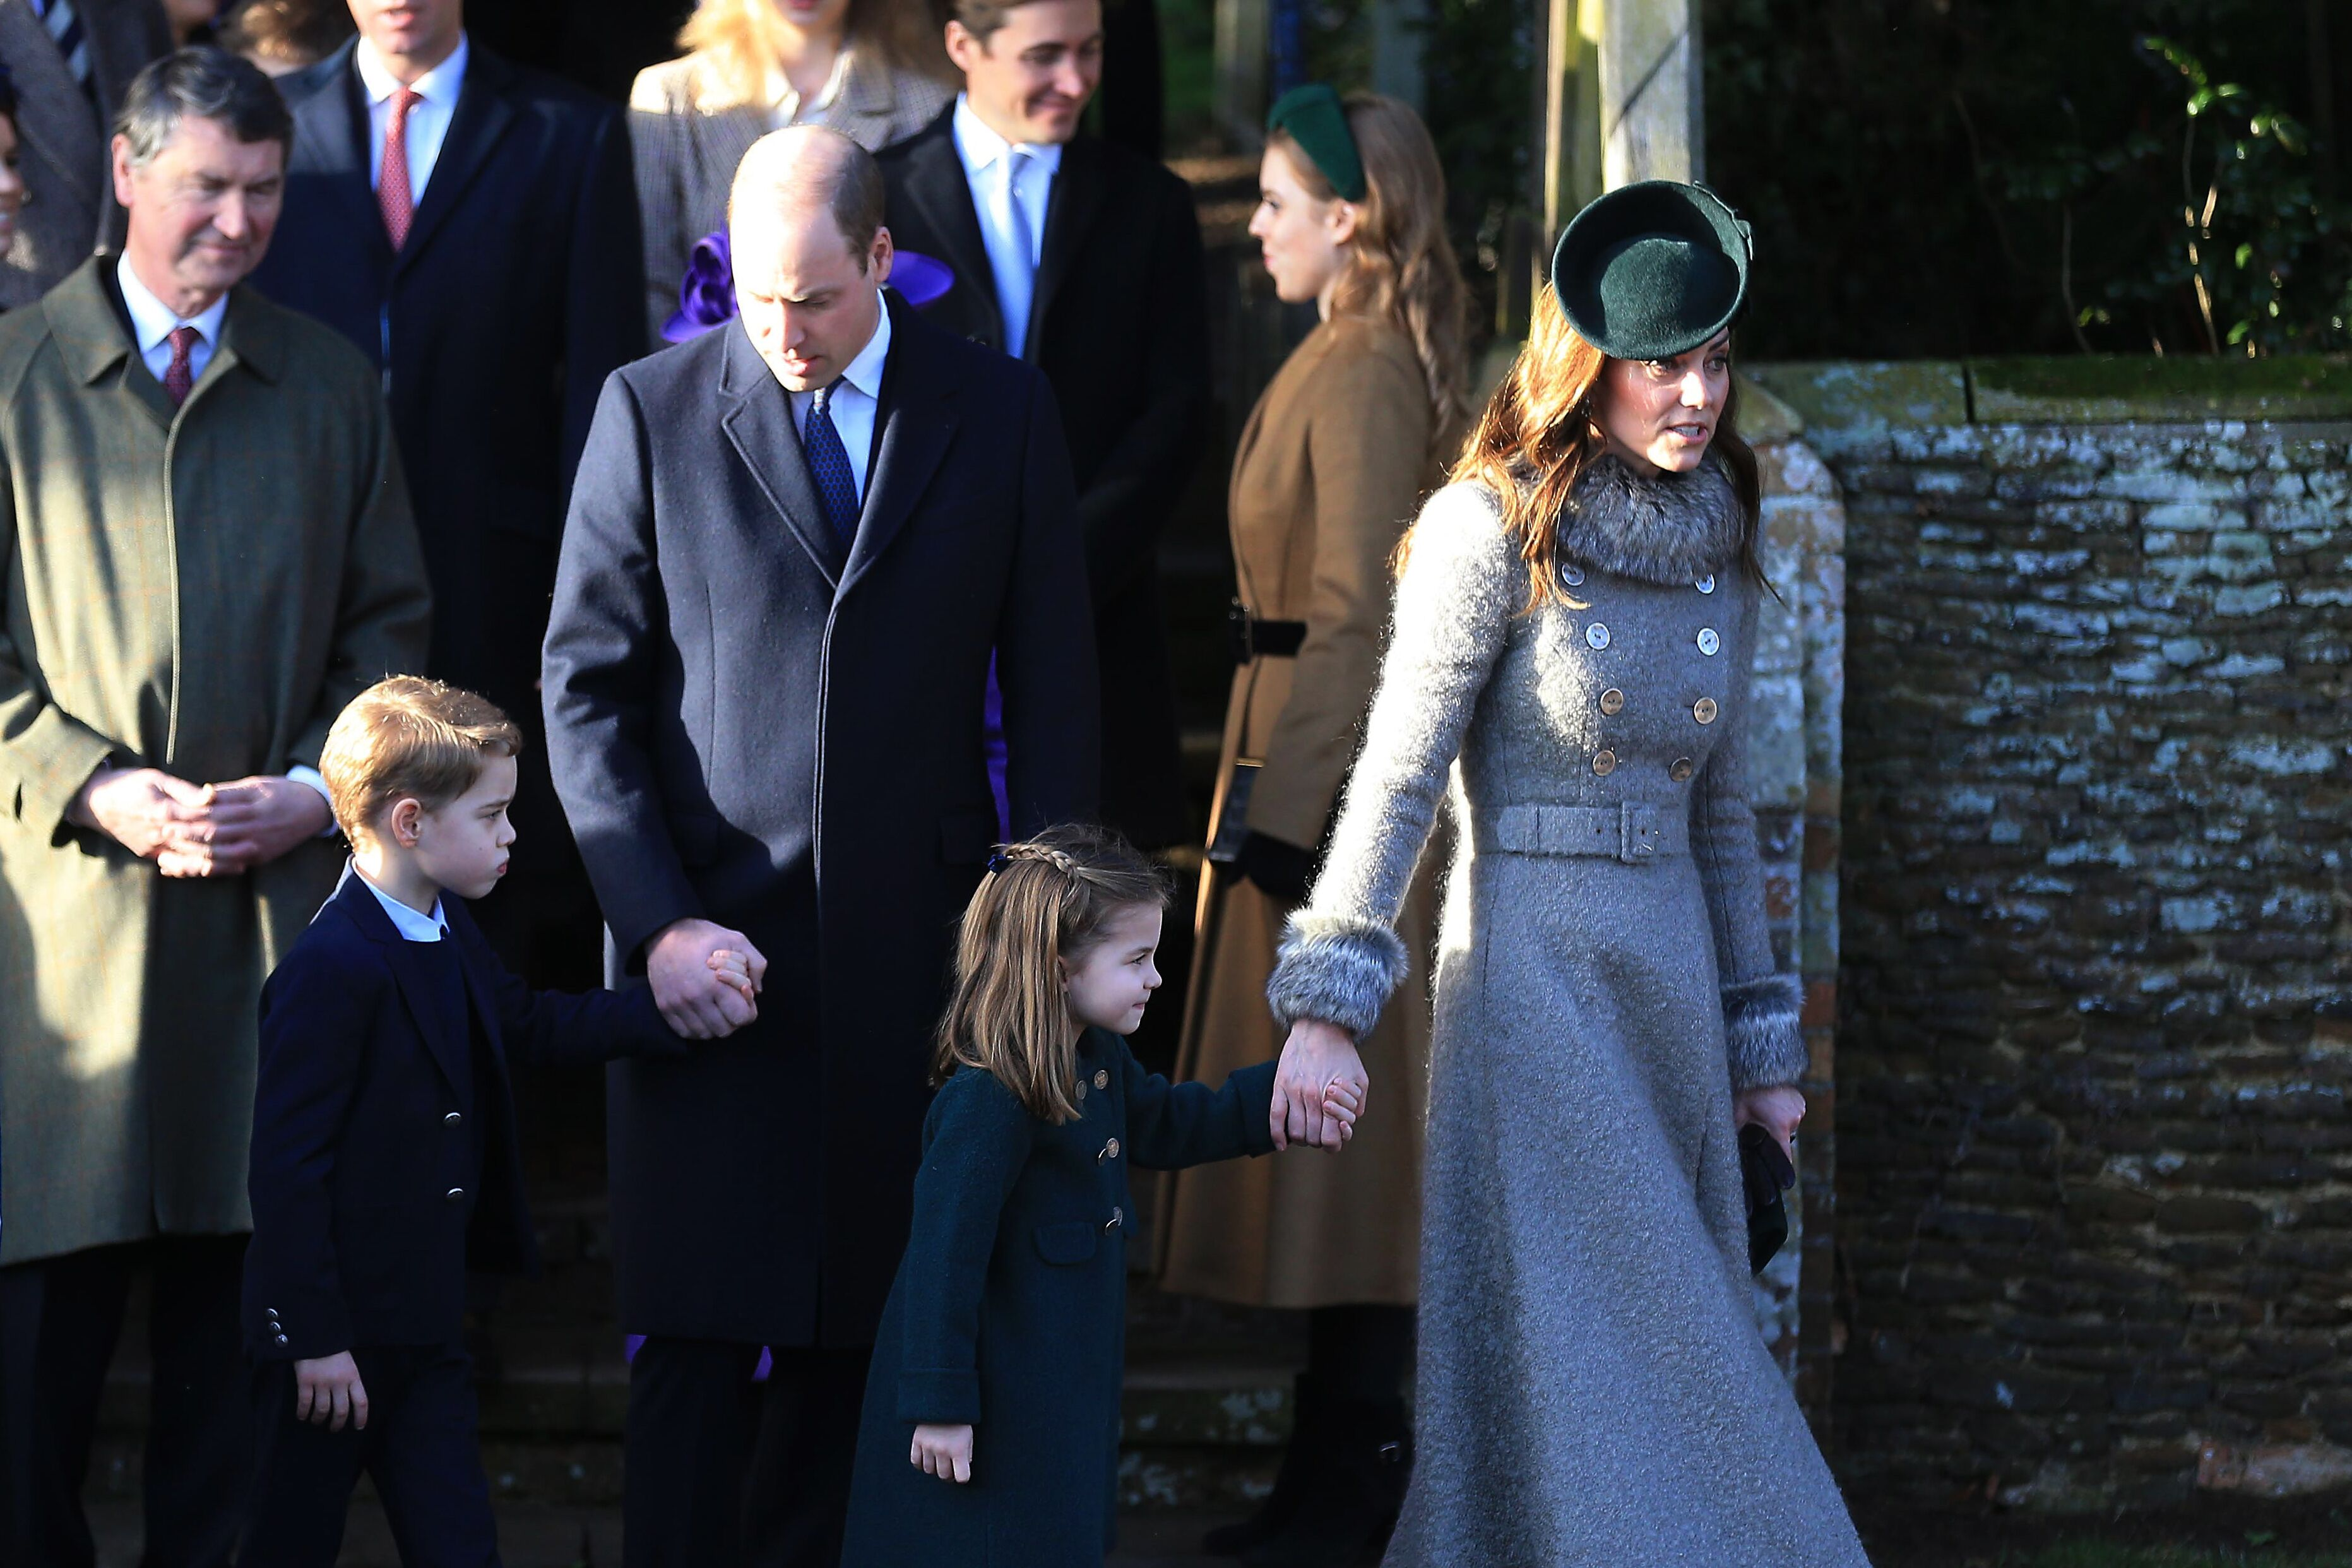 Prince William, Duke of Cambridge, Prince George, Princess Charlotte and Catherine, Duchess of Cambridge attend the Christmas Day Church service at Church of St Mary Magdalene on the Sandringham estate in King's Lynn, United Kingdom | Photo: Getty Images